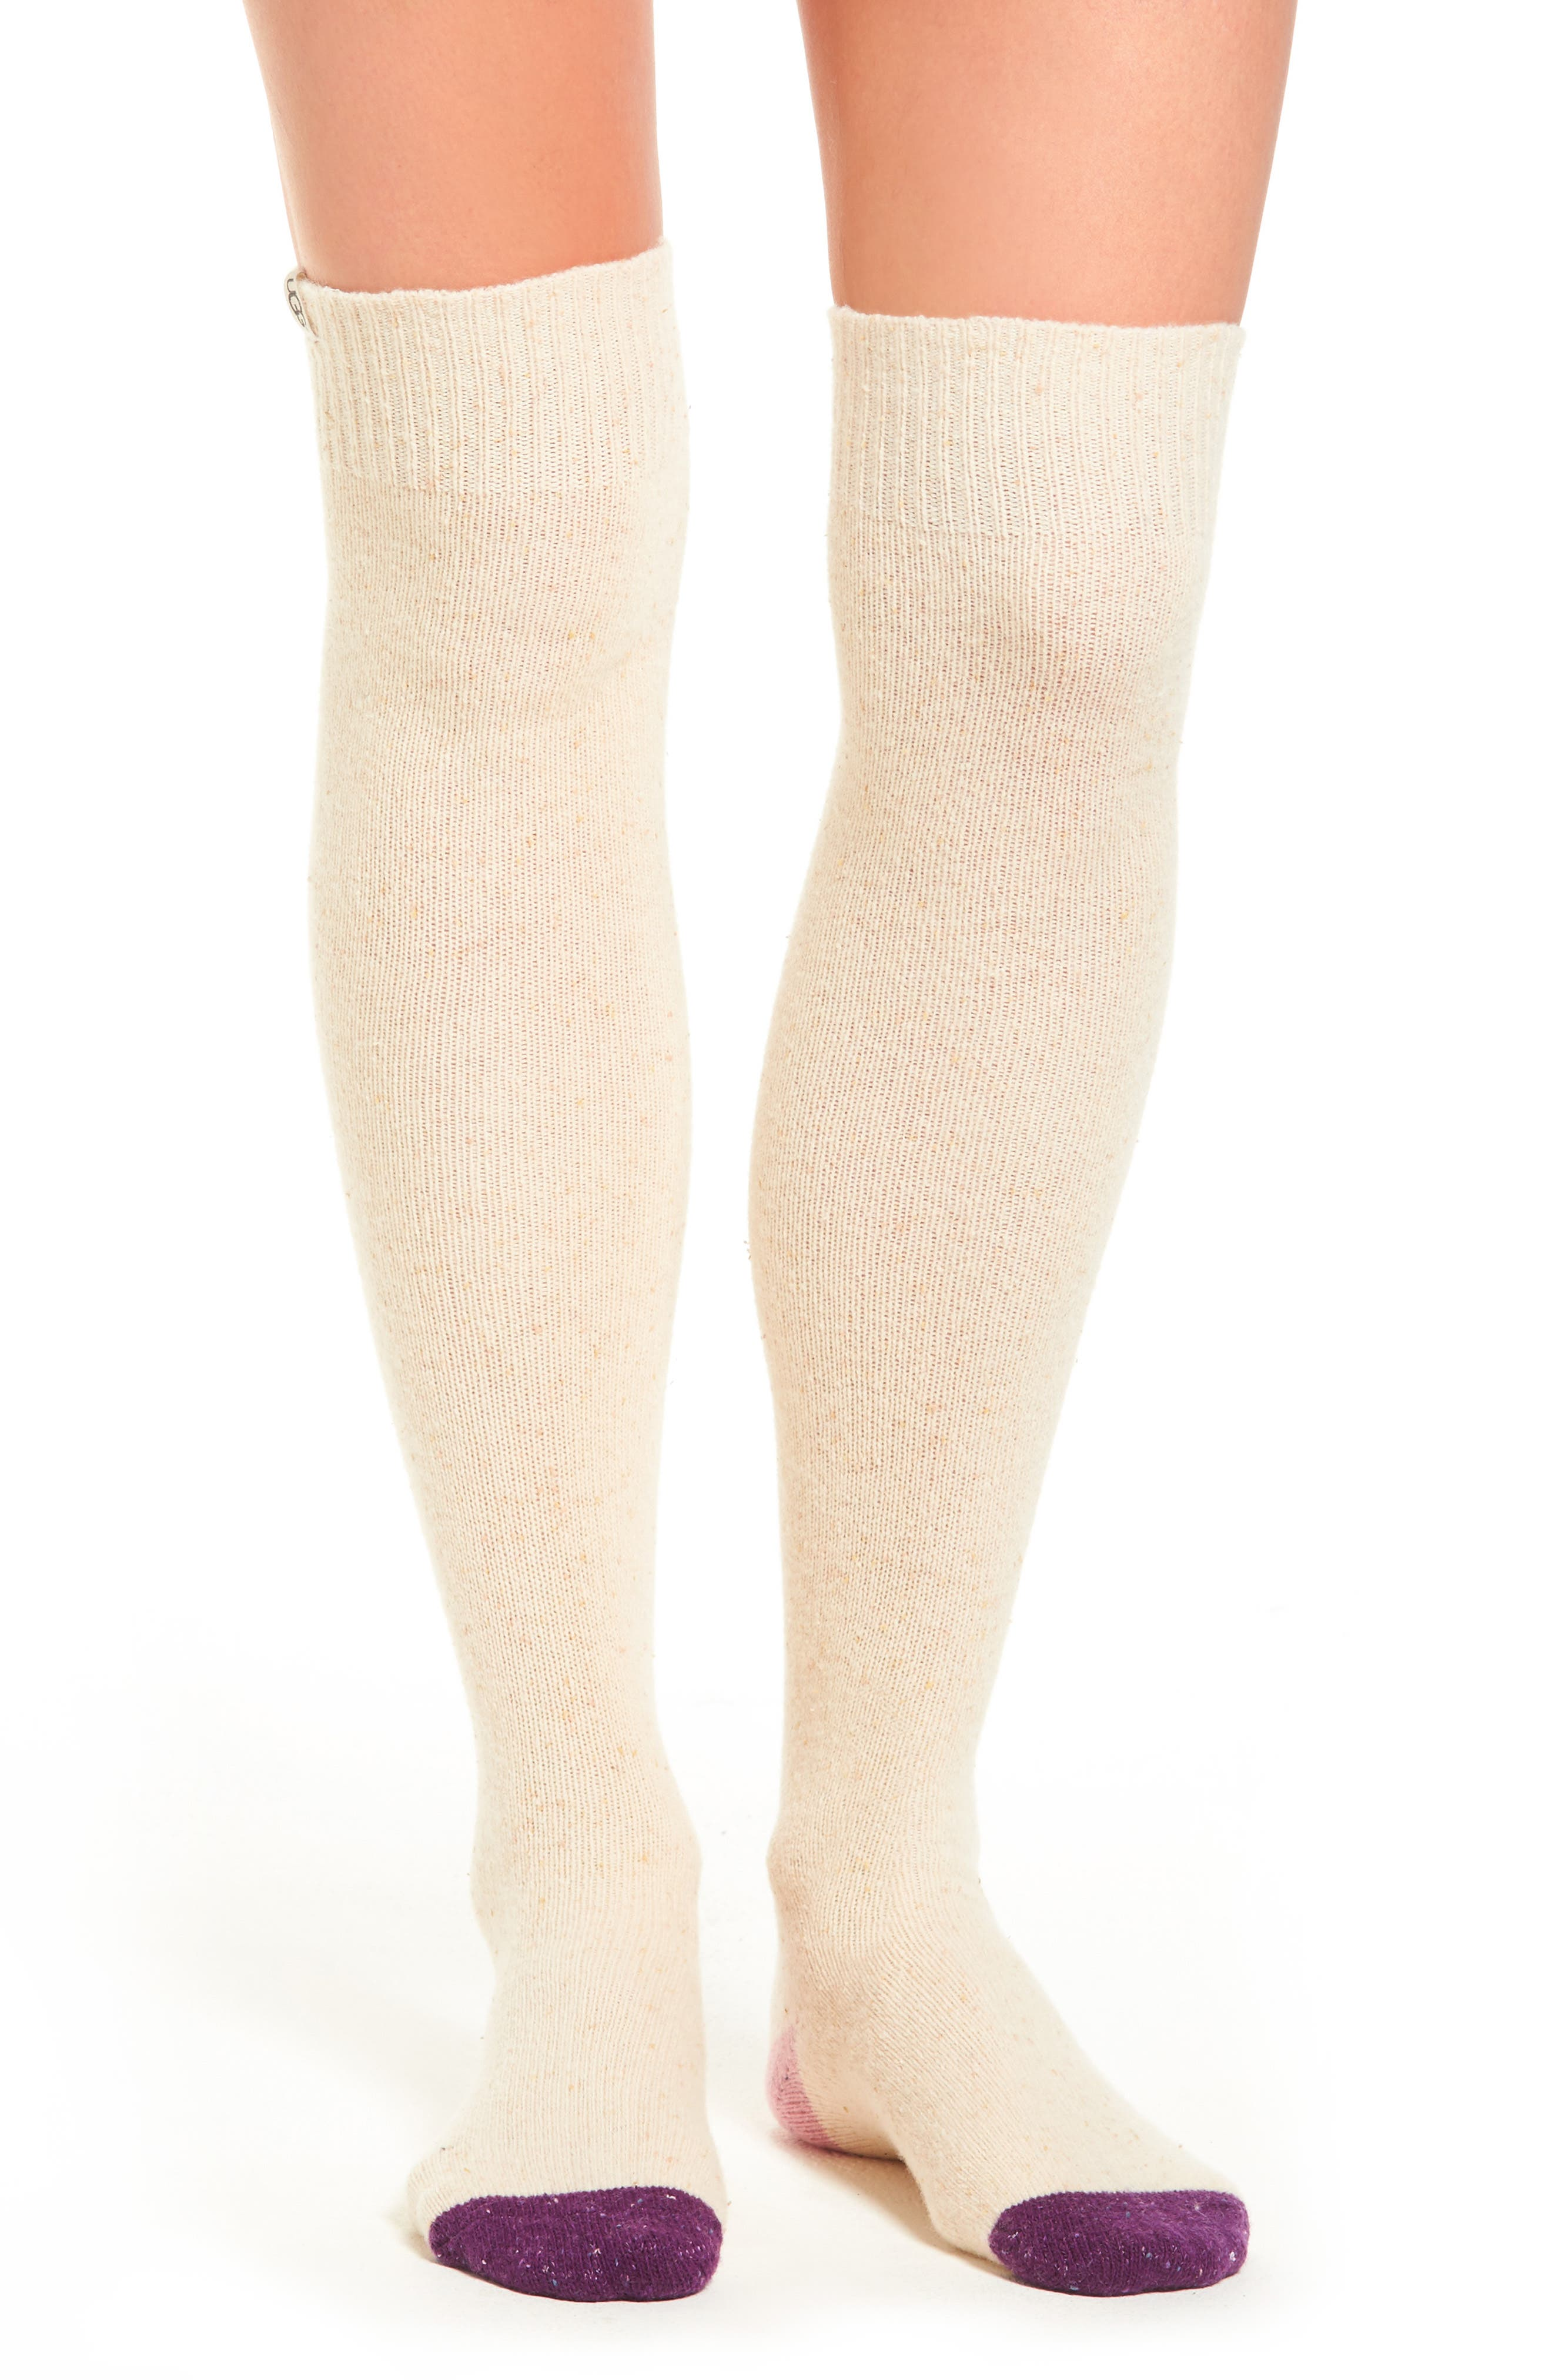 Colorblock Over the Knee Socks,                         Main,                         color, Powder